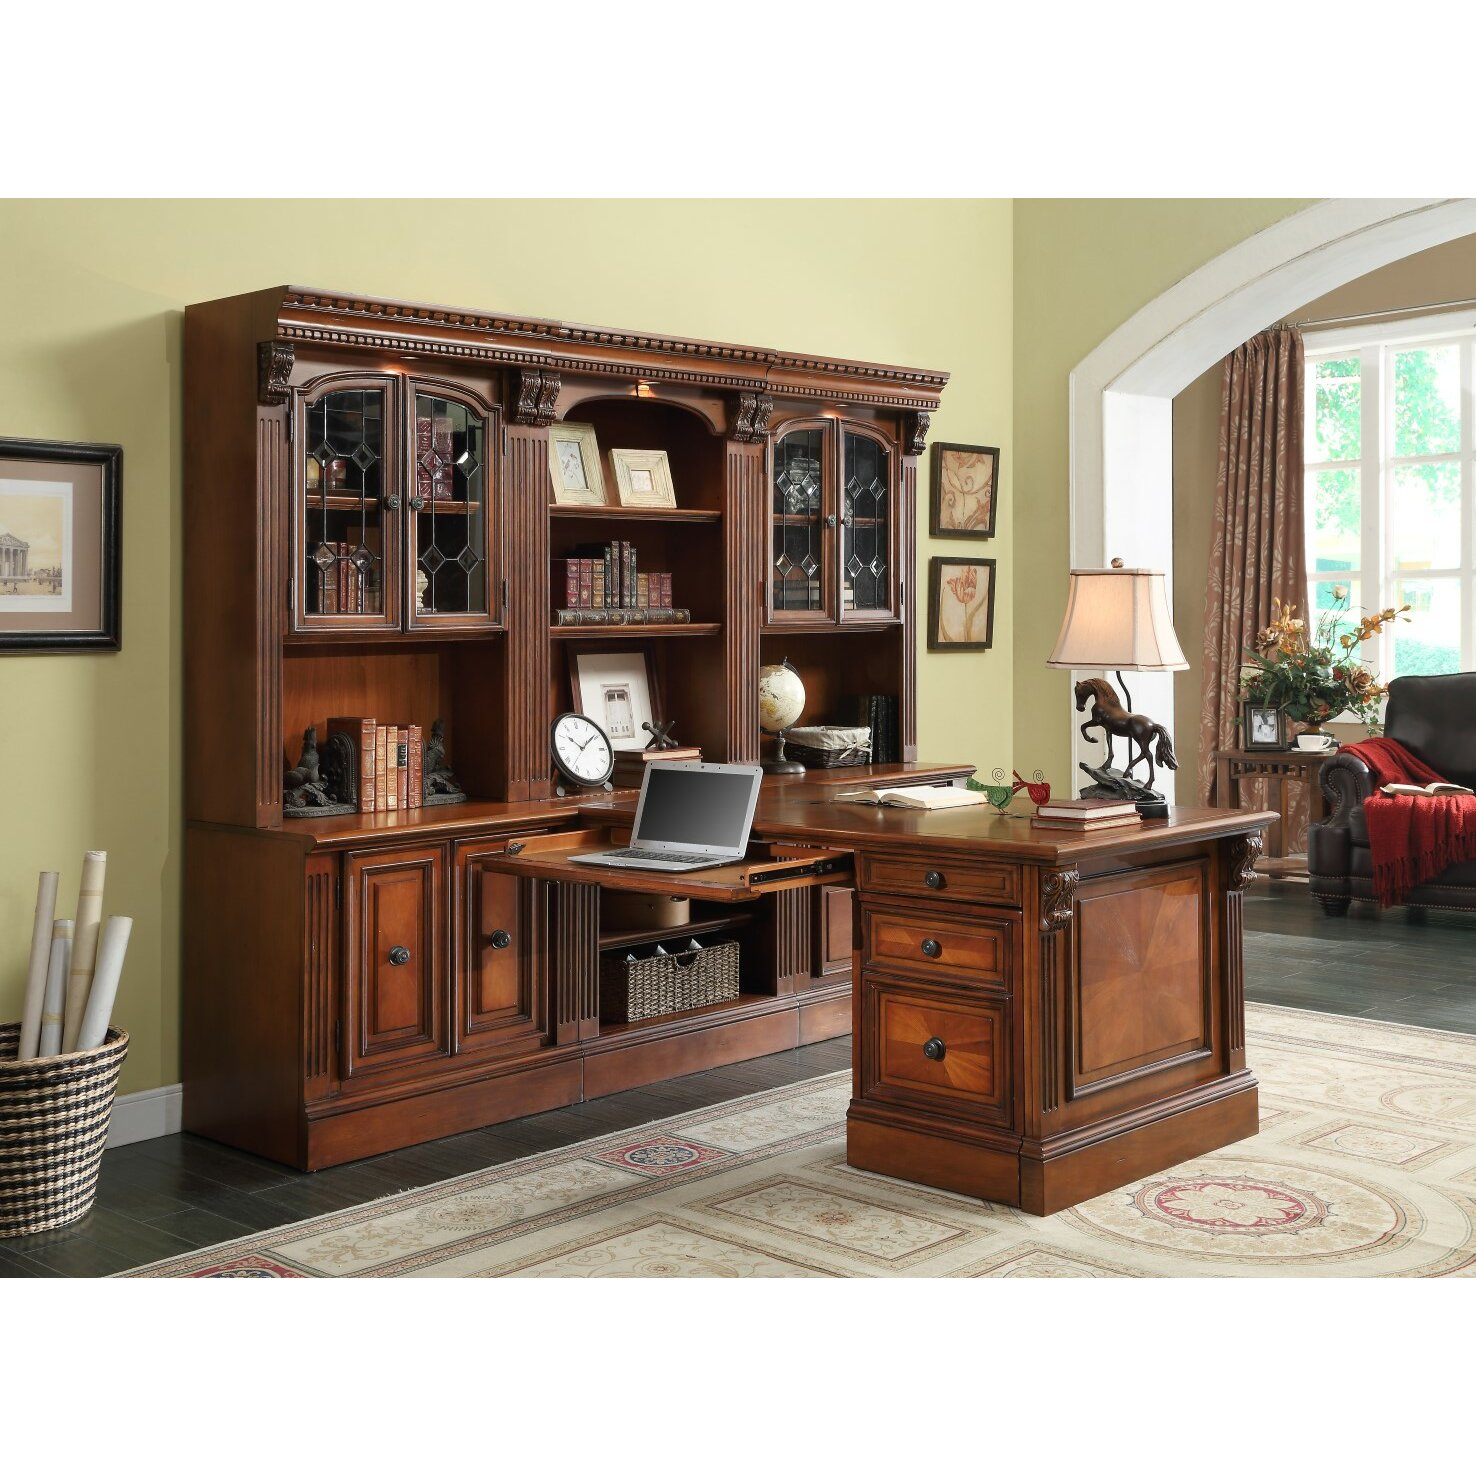 Delightful Huntington House Furniture Reviews